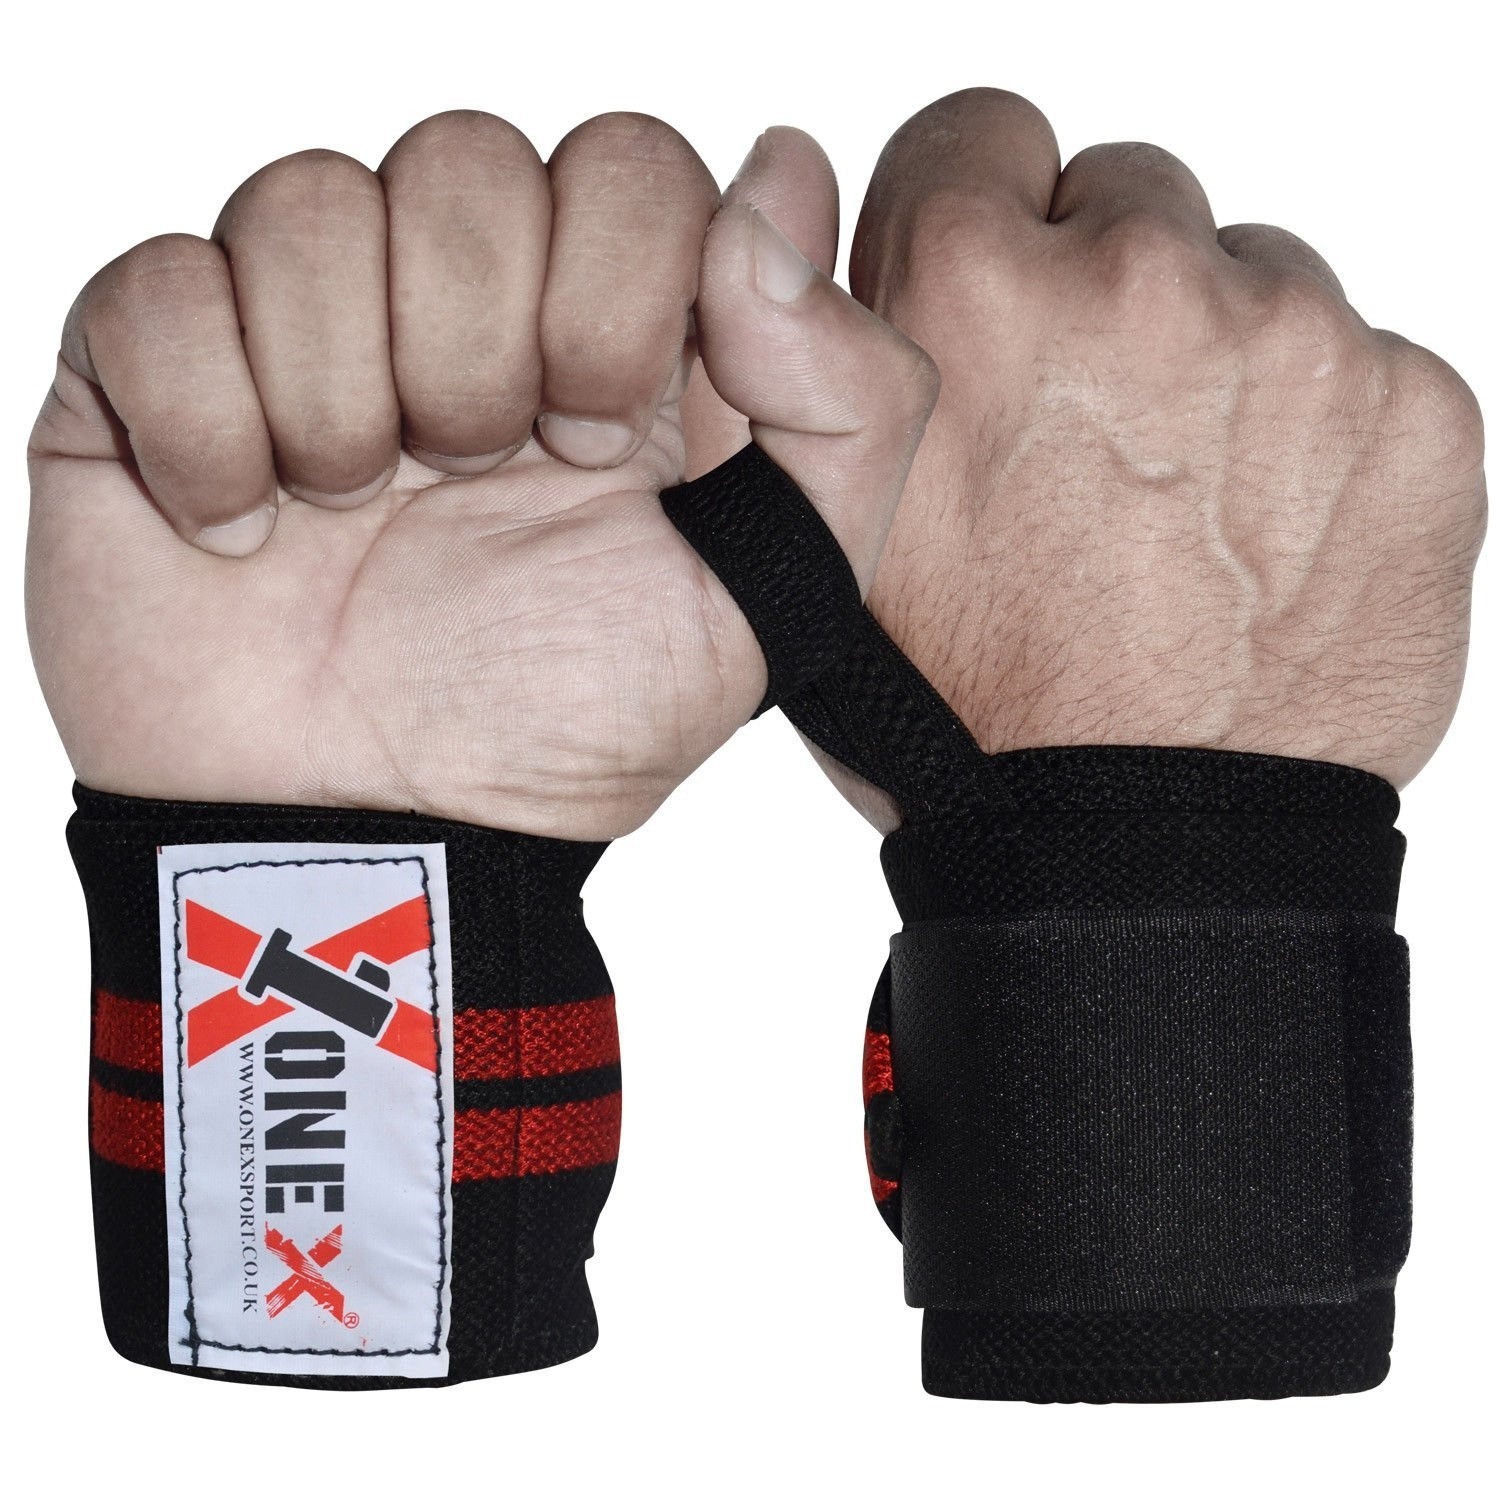 Onex Boxing Weight Lifting Hand Wrap Hand Bar Gym Straps Wrist Support Training